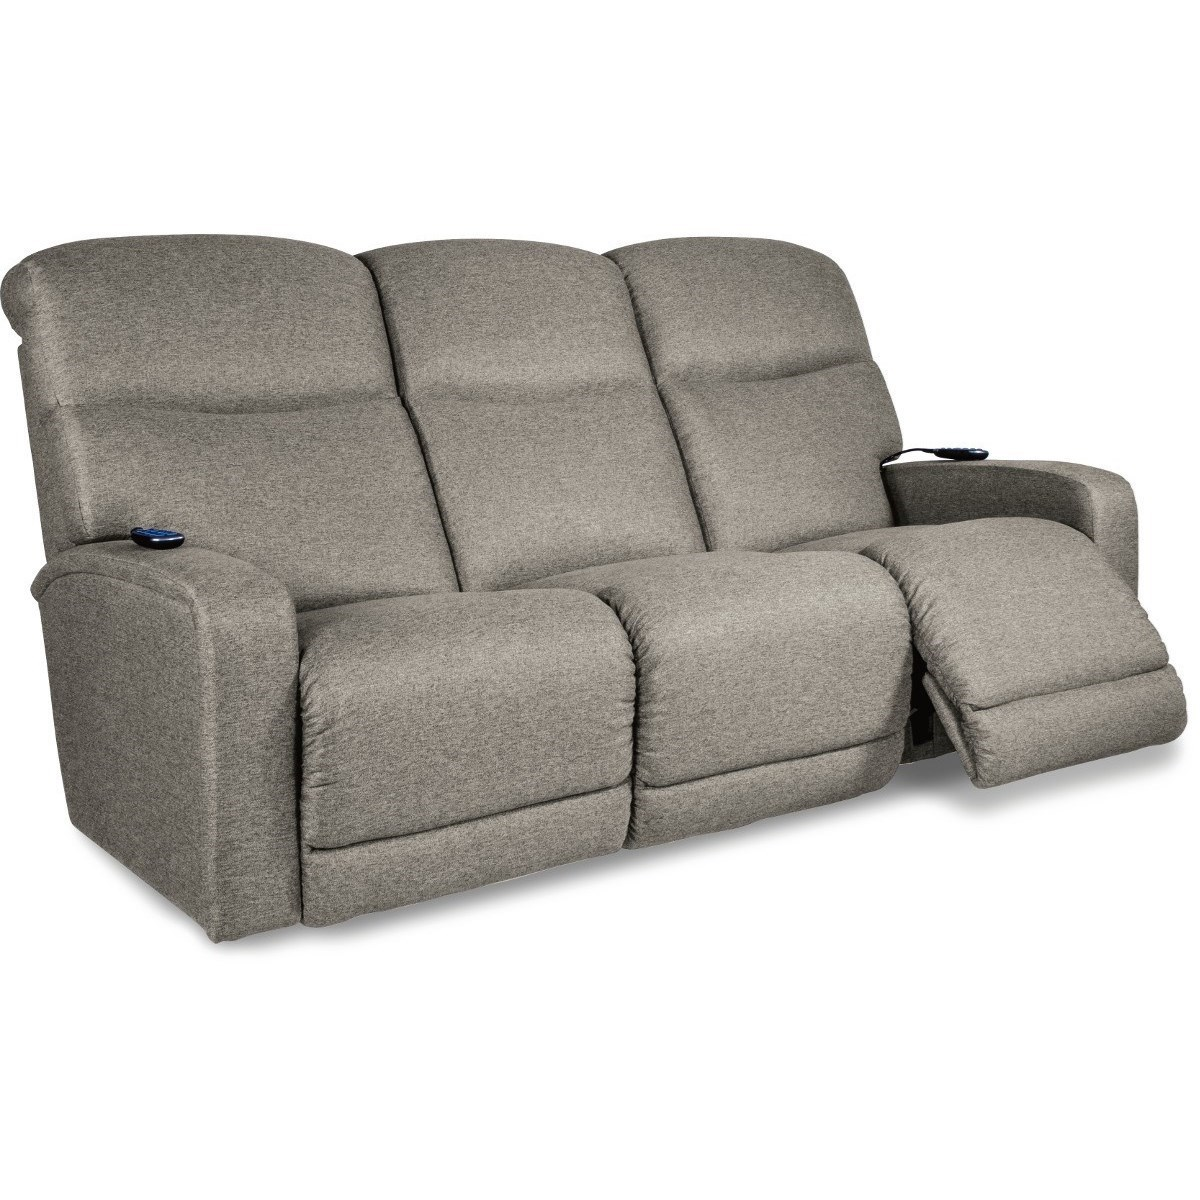 sofa world recliner chairs design your own sectional canada la z boy levi contemporary power recline xrw reclining with headrests and lumbar